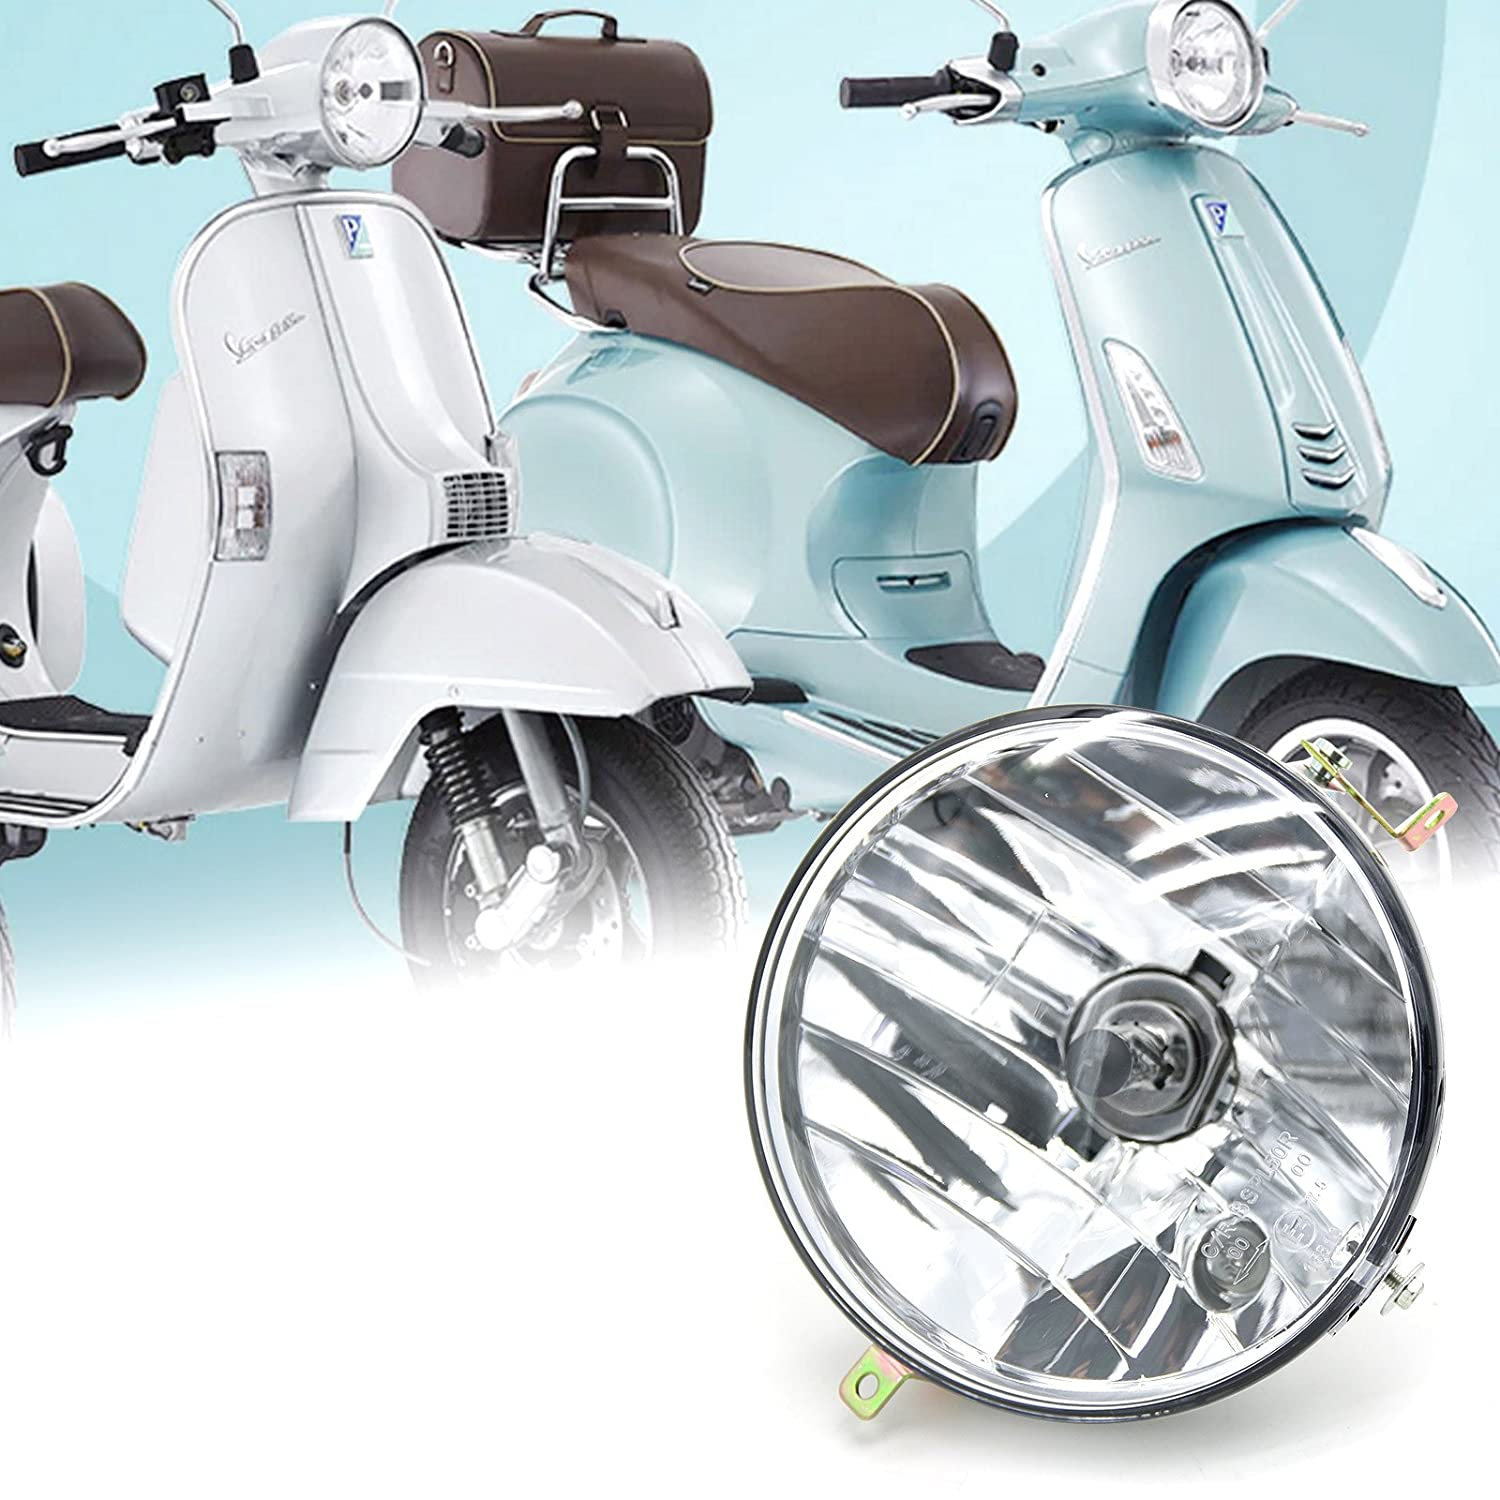 12V Motorcycle Crystal Headlight Assembly Round Clear Head Lamp for Vespa Old P PE PX125 PX150 P200E Disc T5 EFL LML NV Star Stella Star 4S VINTAGE EVOLUTION 4S 2S STAR 4S 2S VINTAGE 2S GT 2T STAR 125